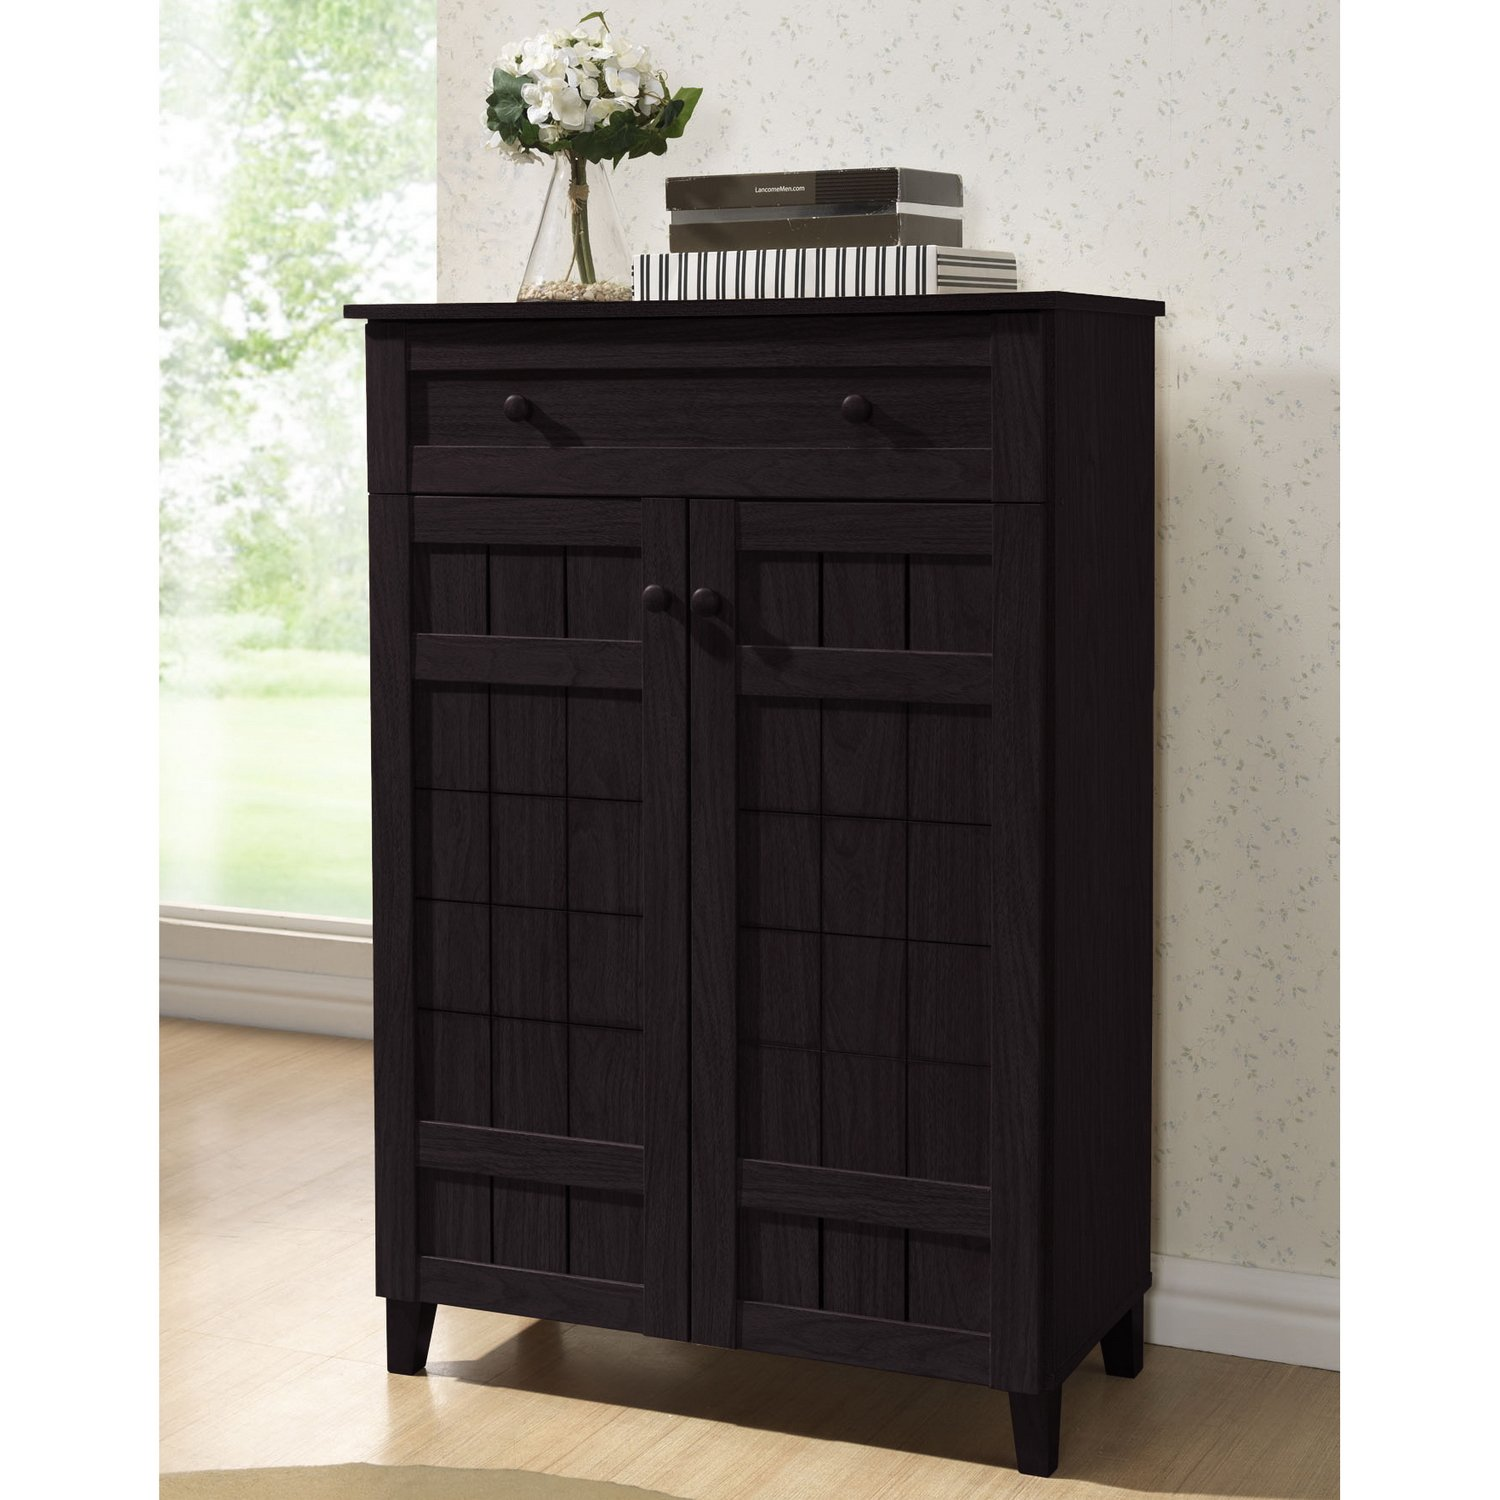 Genial Amazon.com: Baxton Studio Glidden Wood Modern Shoe Cabinet, Tall, Dark  Brown: Kitchen U0026 Dining